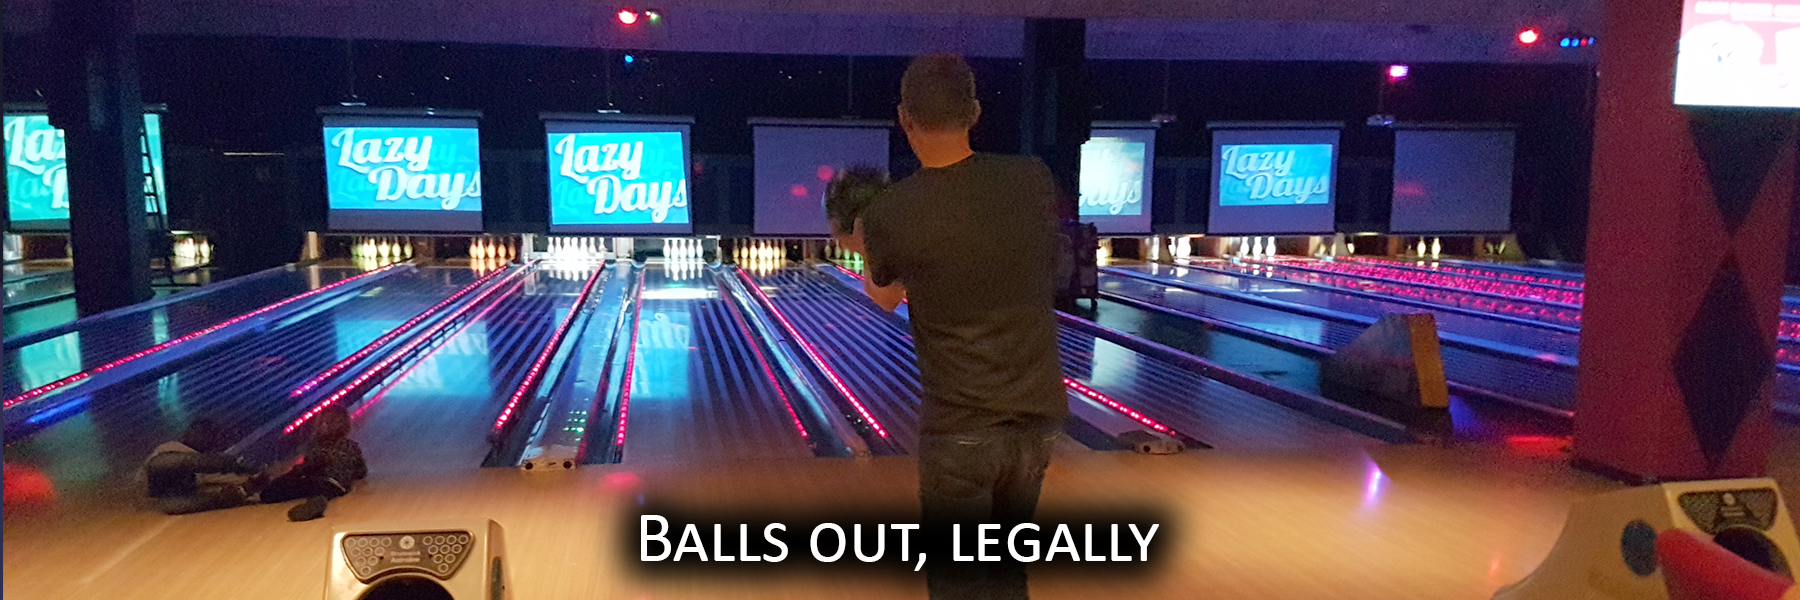 Balls out, legally